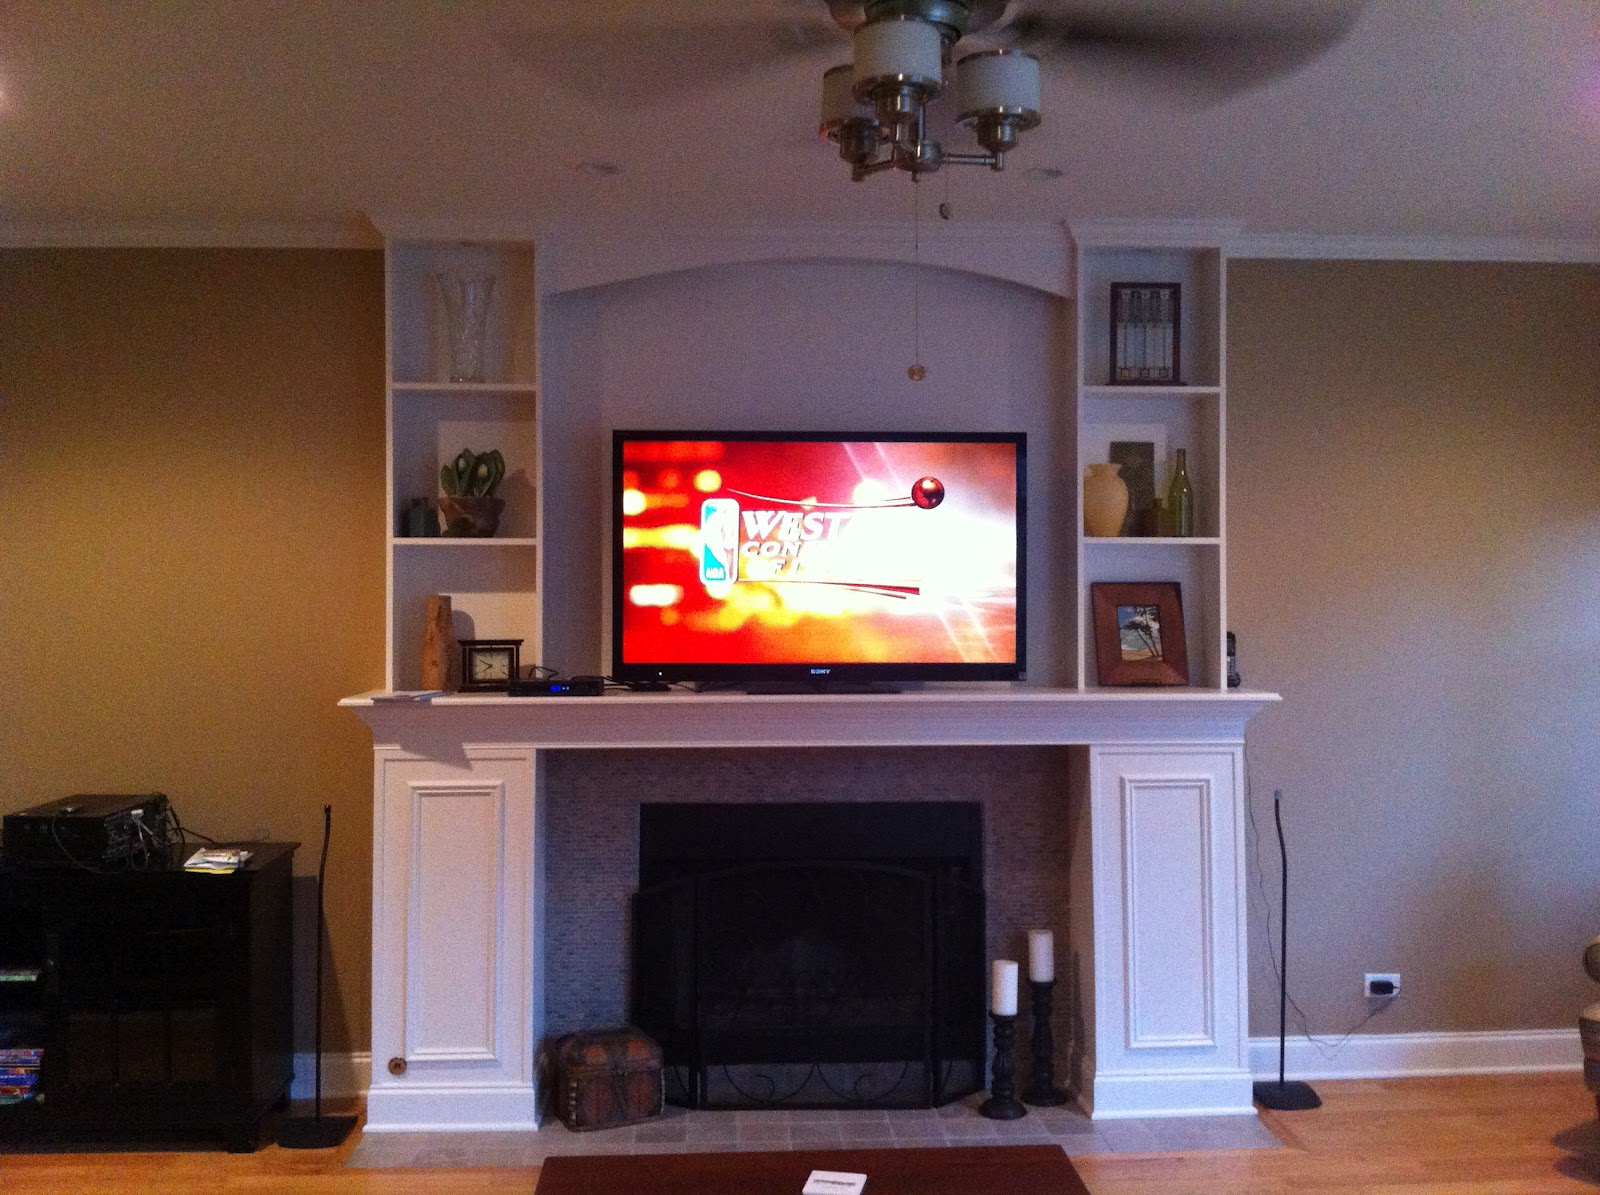 Home Theater Remodel Built In Shelving Plans All Apple